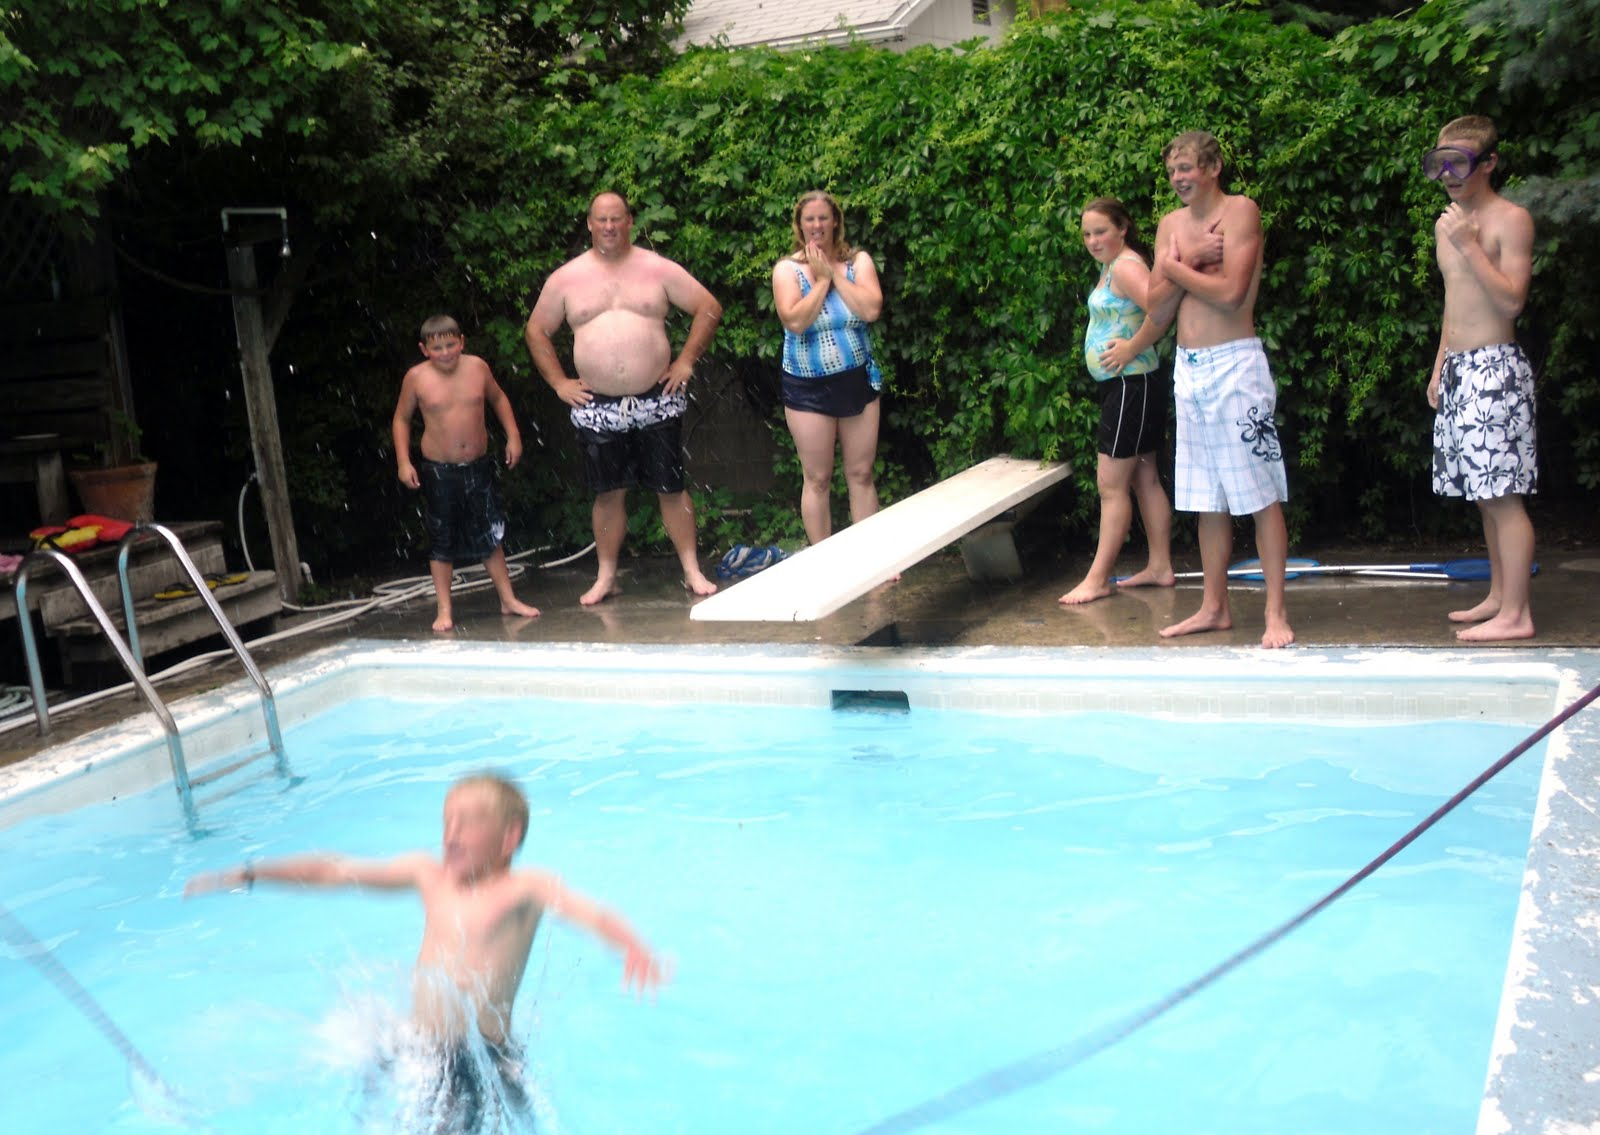 The James Family July 4th Pool Party